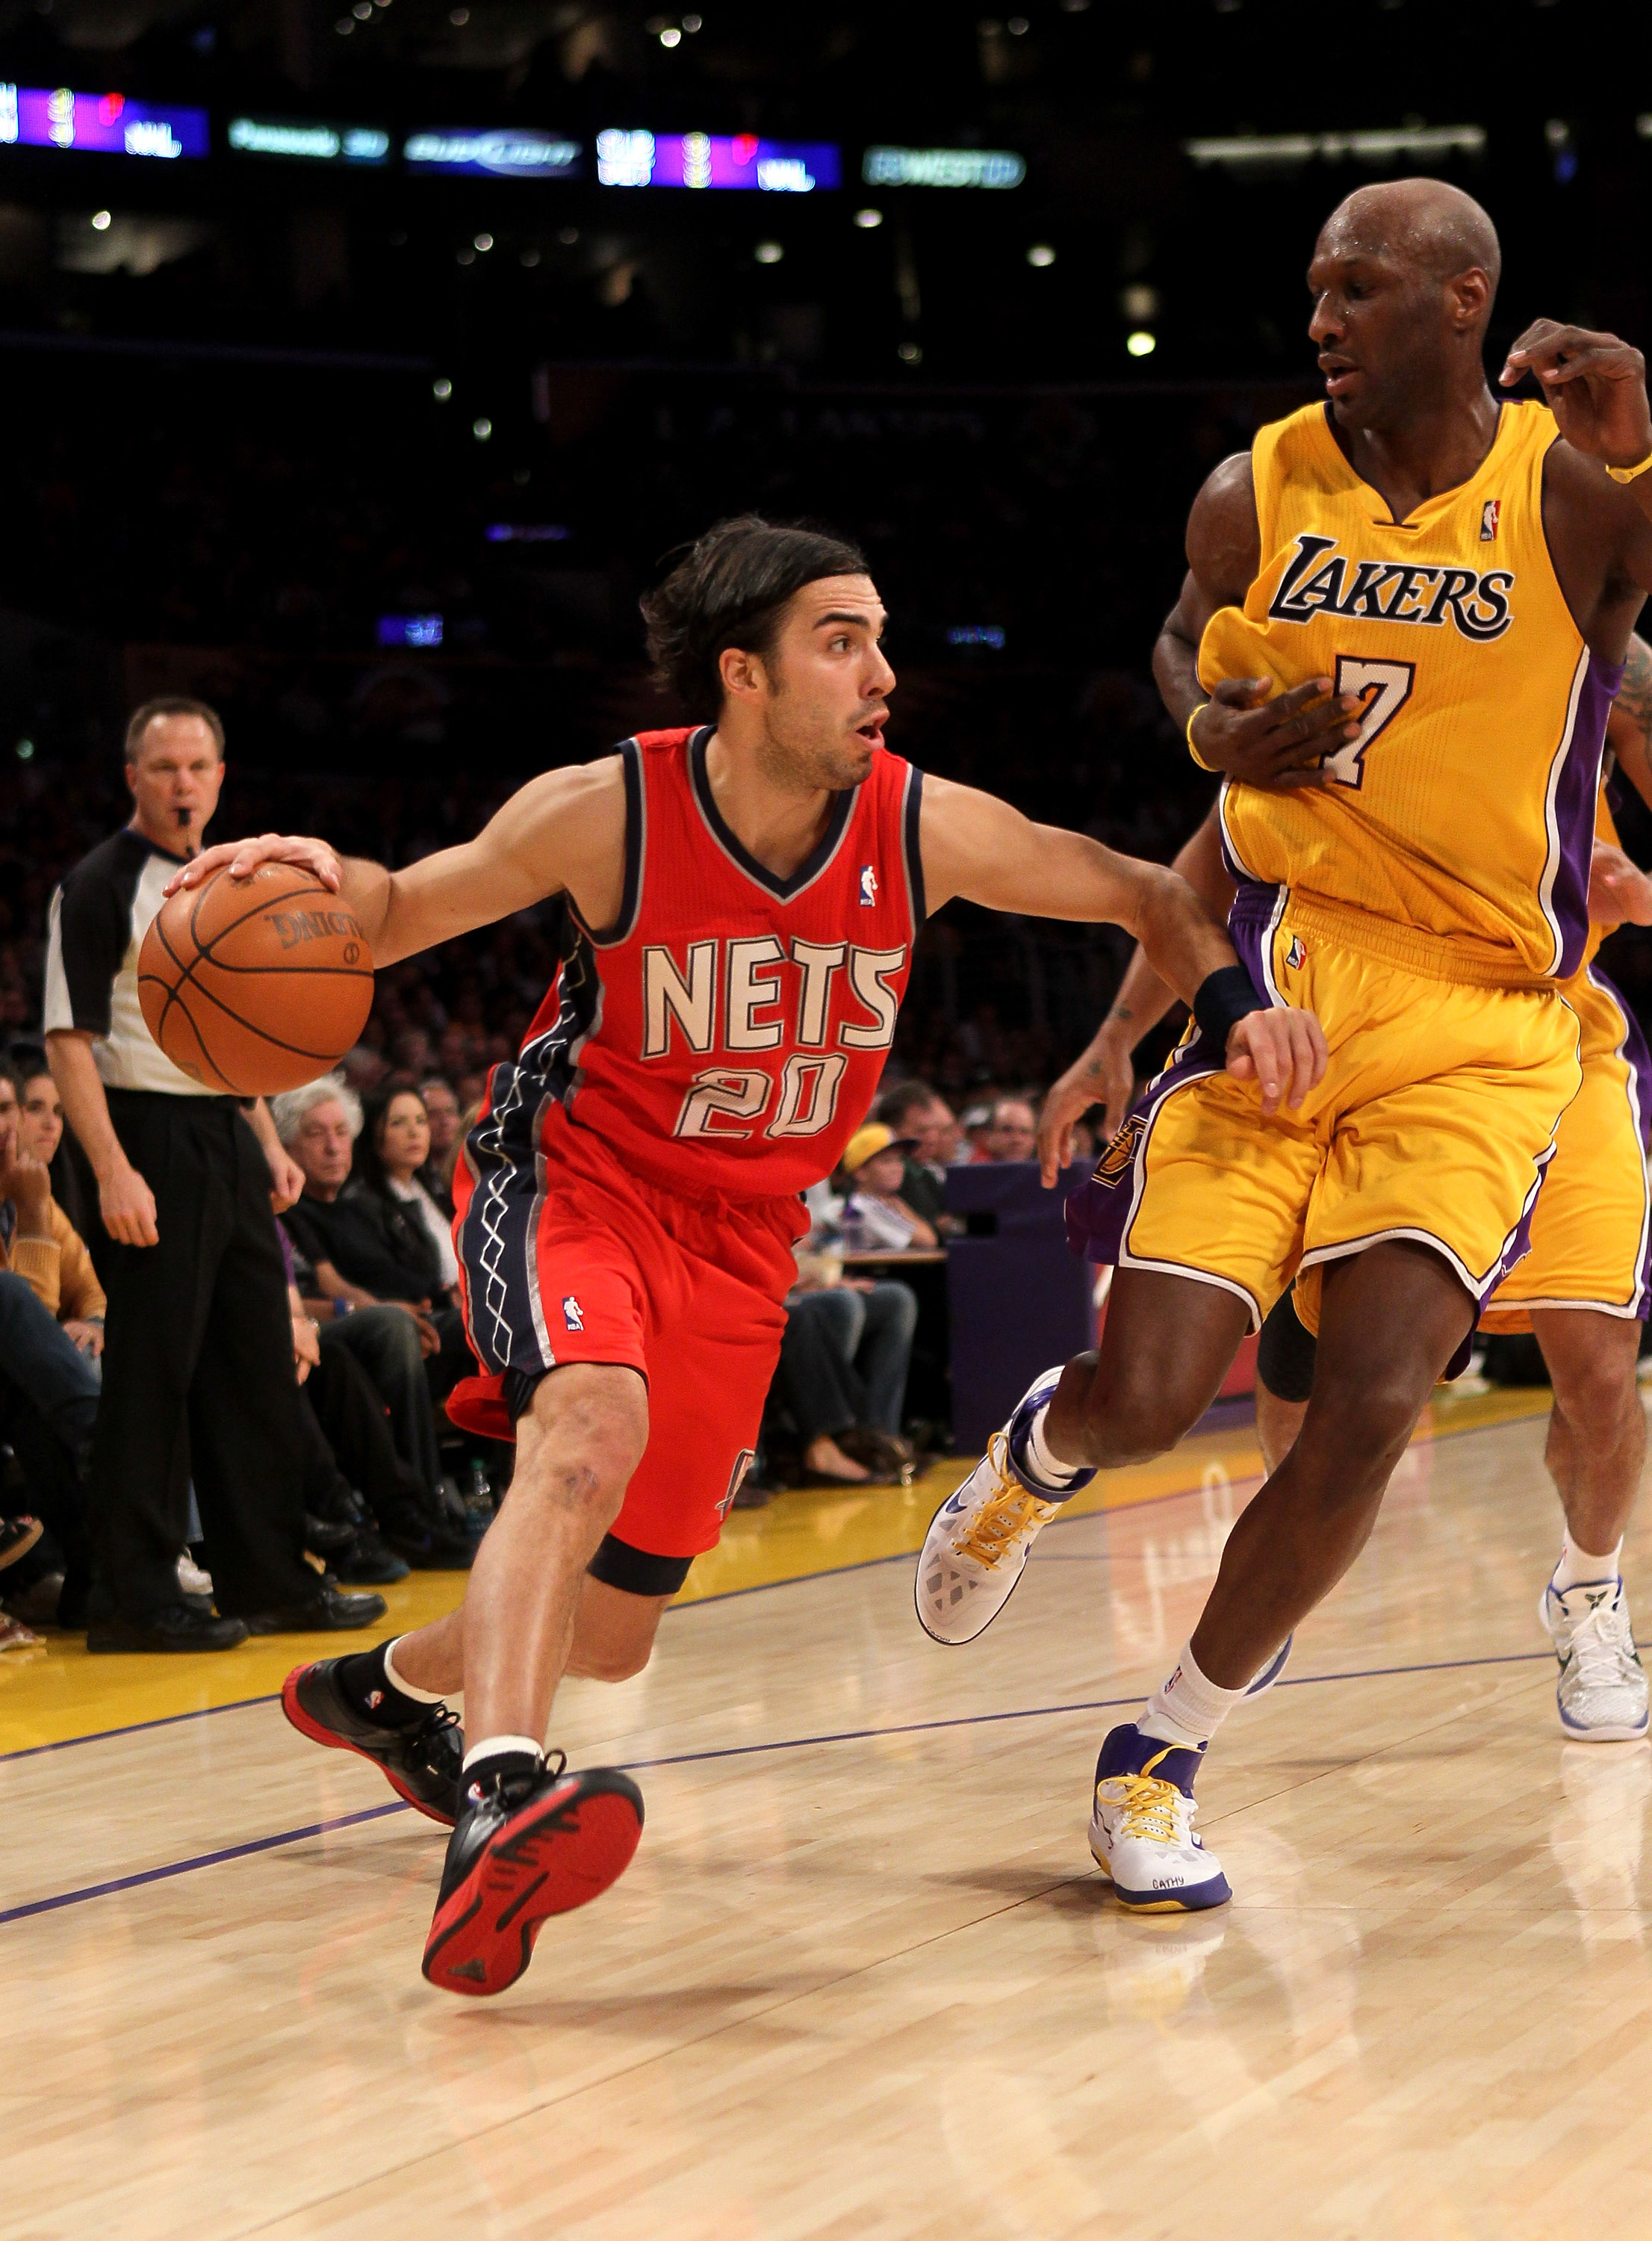 LOS ANGELES, CA - JANUARY 14:  Sasha Vujacic #20 of the New Jersey Nets drives against Lamar Odom #7 of the Los Angeles Lakers at Staples Center on January 14, 2011 in Los Angeles, California. The Lakers won 100-88.  NOTE TO USER: User expressly acknowled